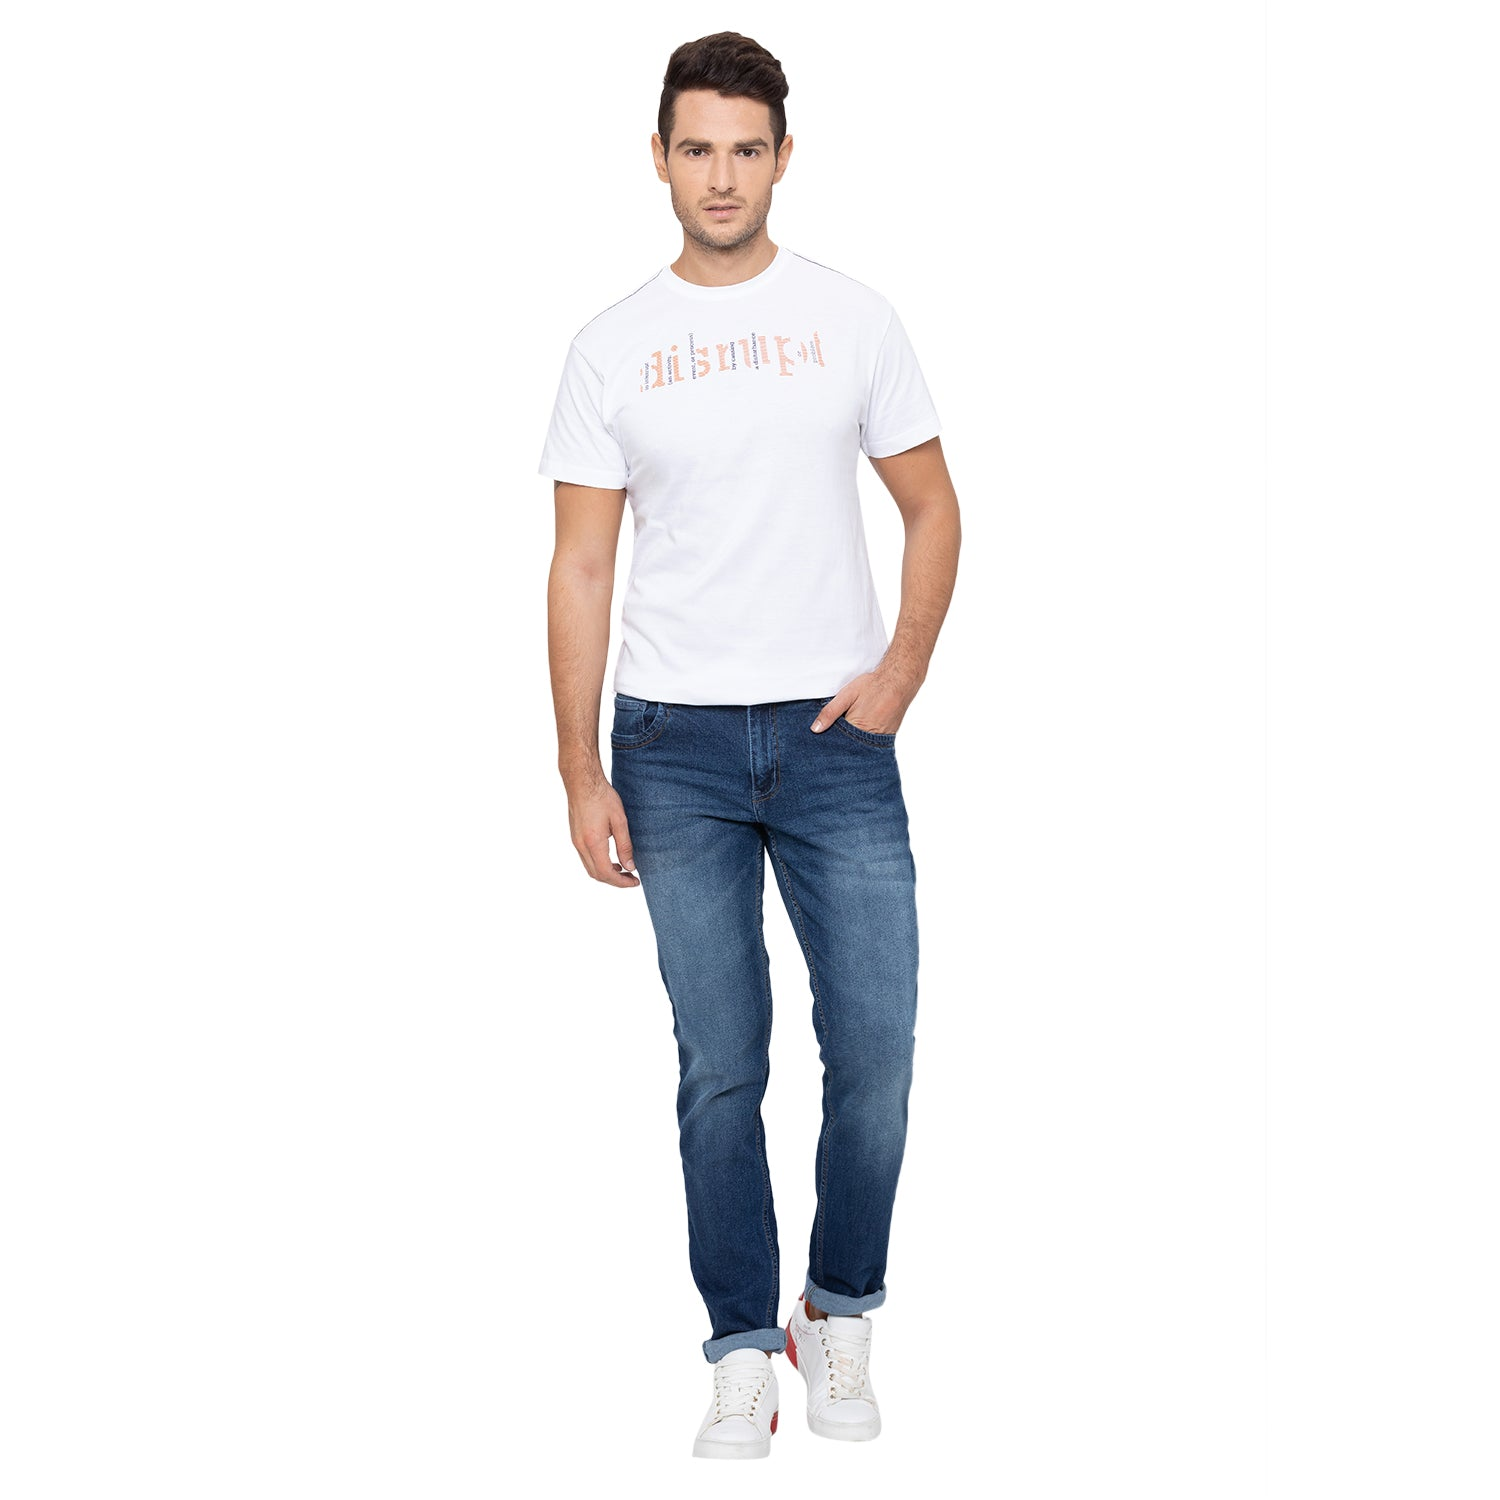 Globus Blue Washed Clean Look Jeans-2